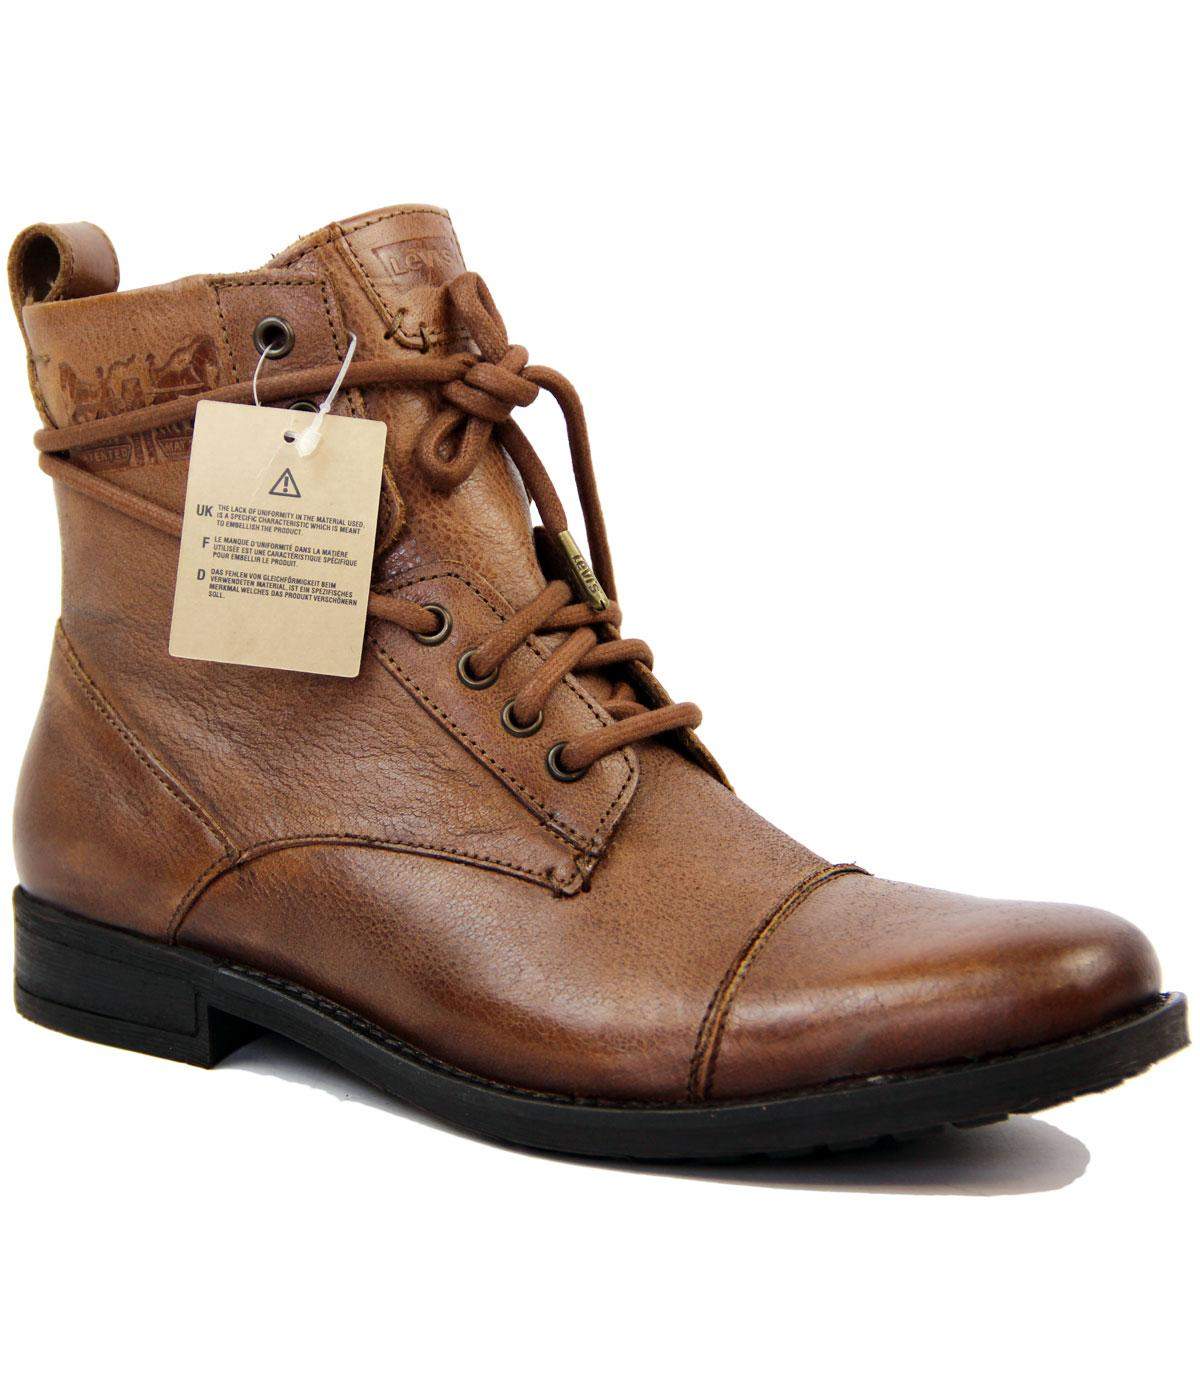 85bf4d132e7a7 Levi's® Maine Retro Indie Mod Military Leather Boots Light Brown